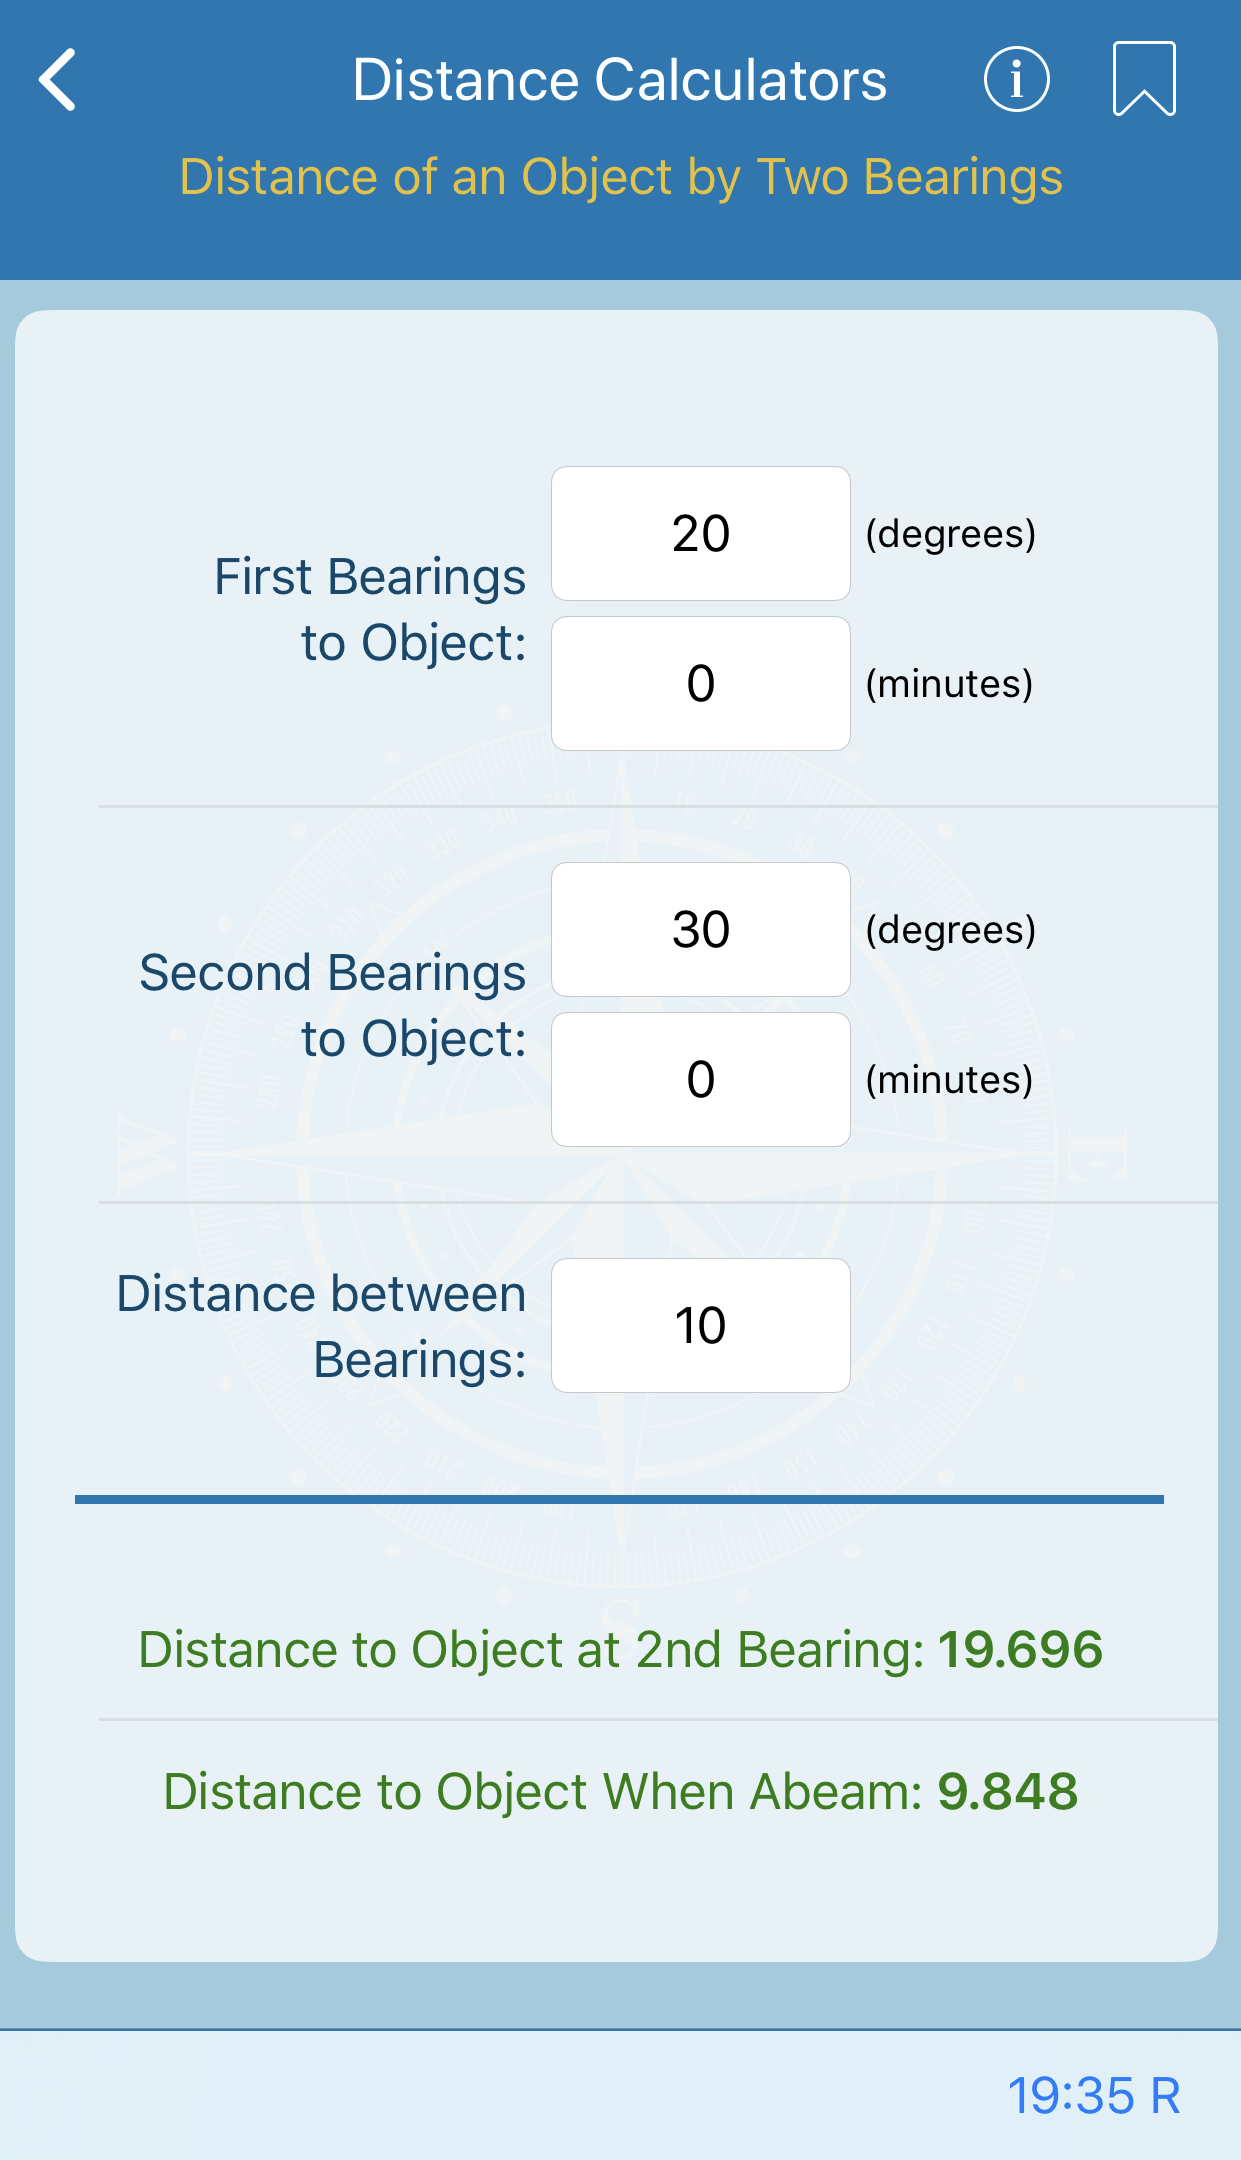 Distance of an Object by Two Bearings